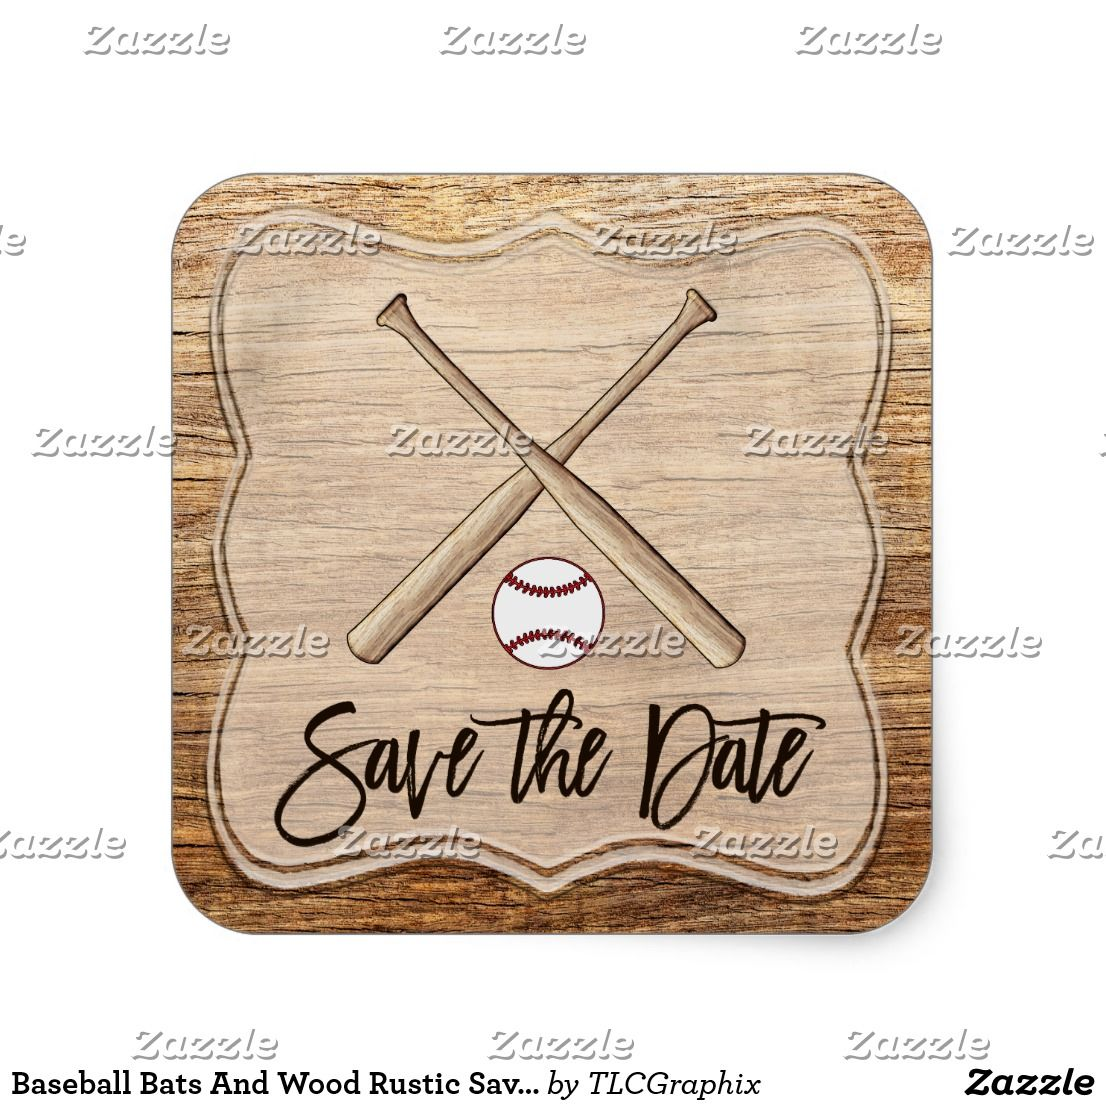 Baseball Bats And Wood Rustic Save The Date Square Sticker Wedding